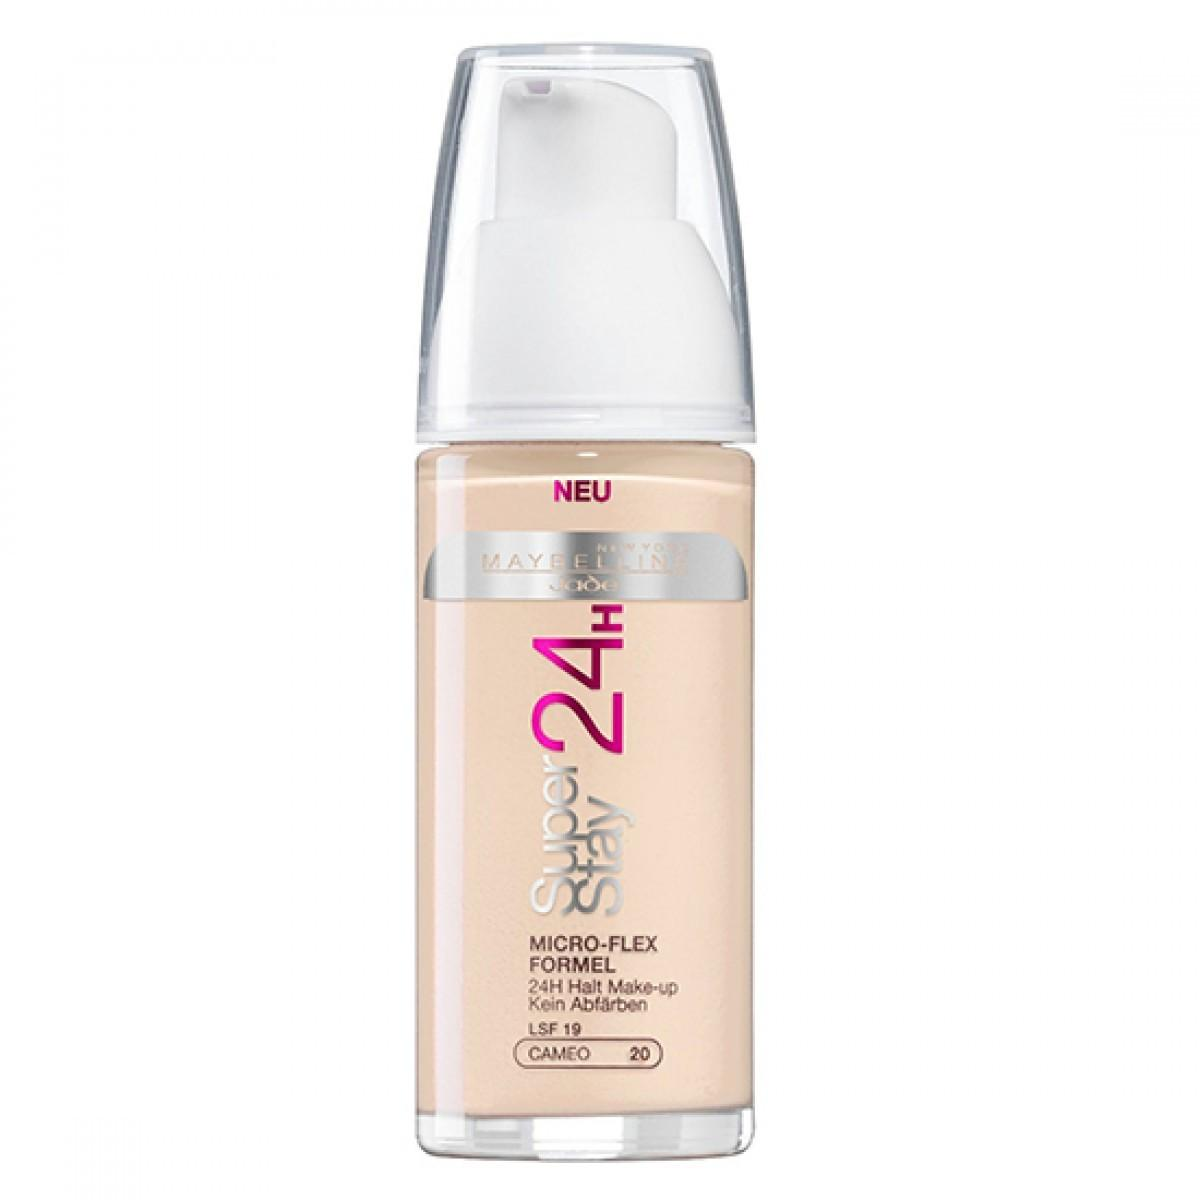 Maybelline fragrances Superstay 24H 020 Cameo